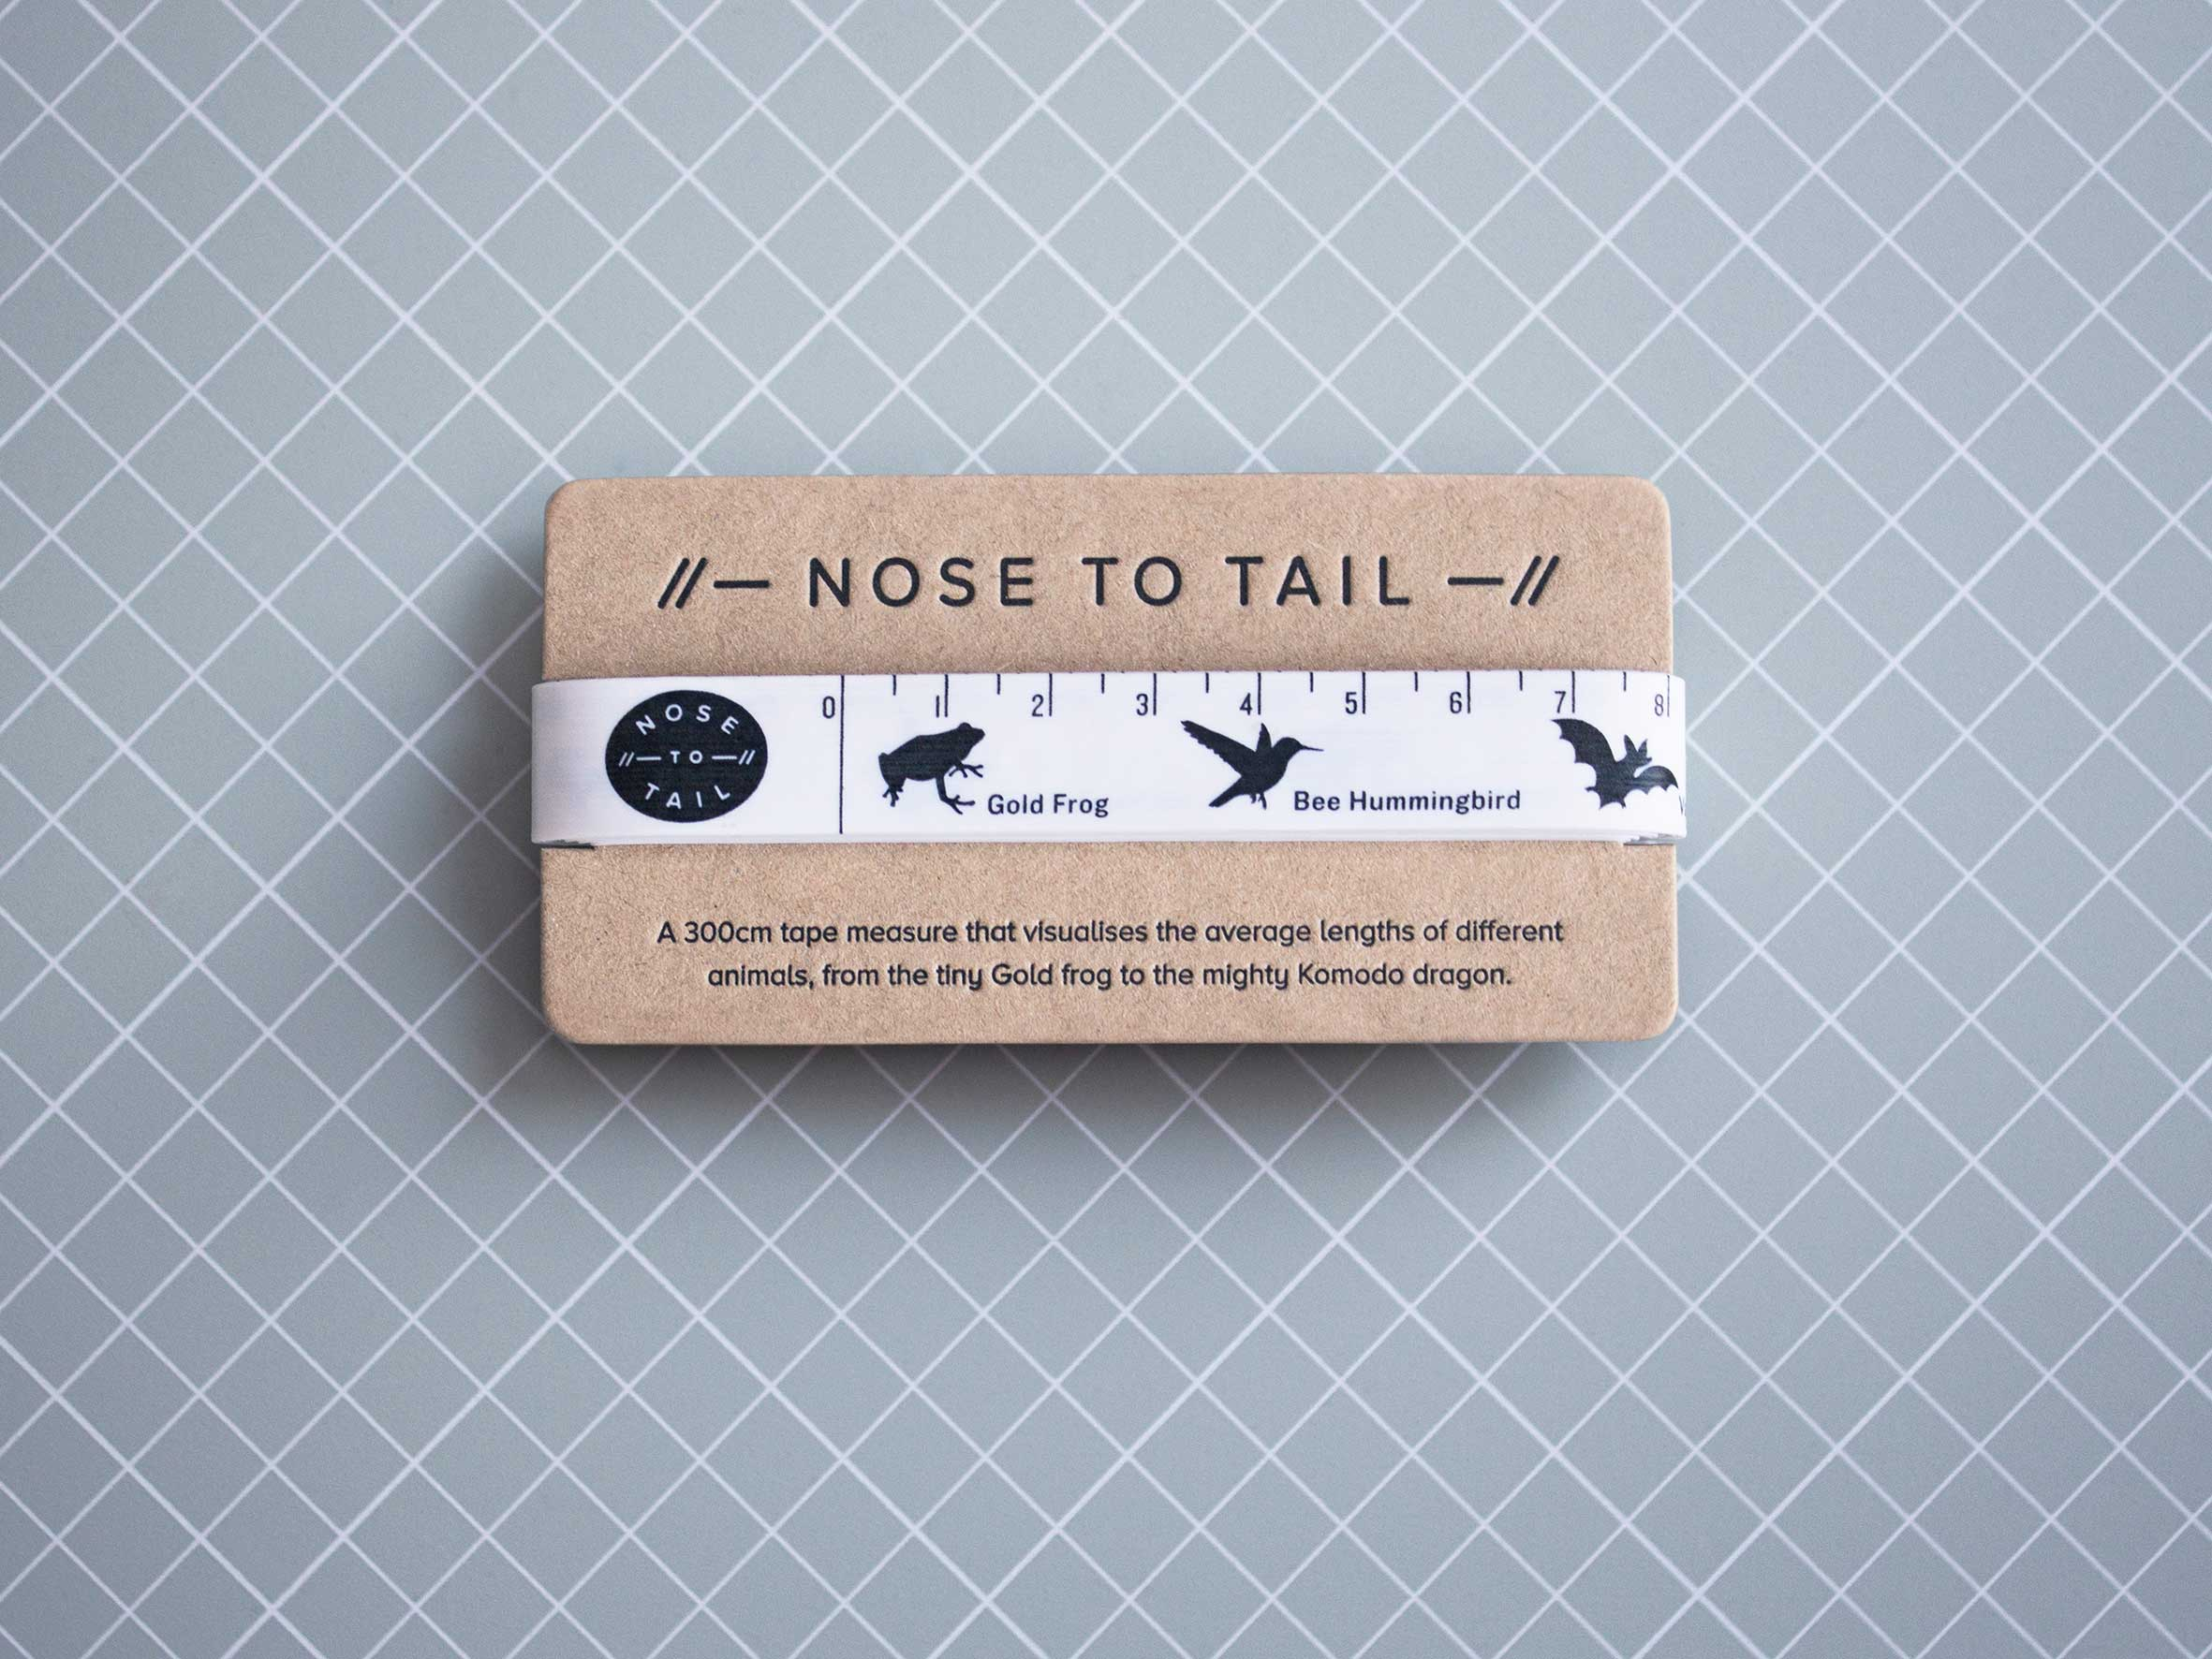 Nose to tail measuring tape.